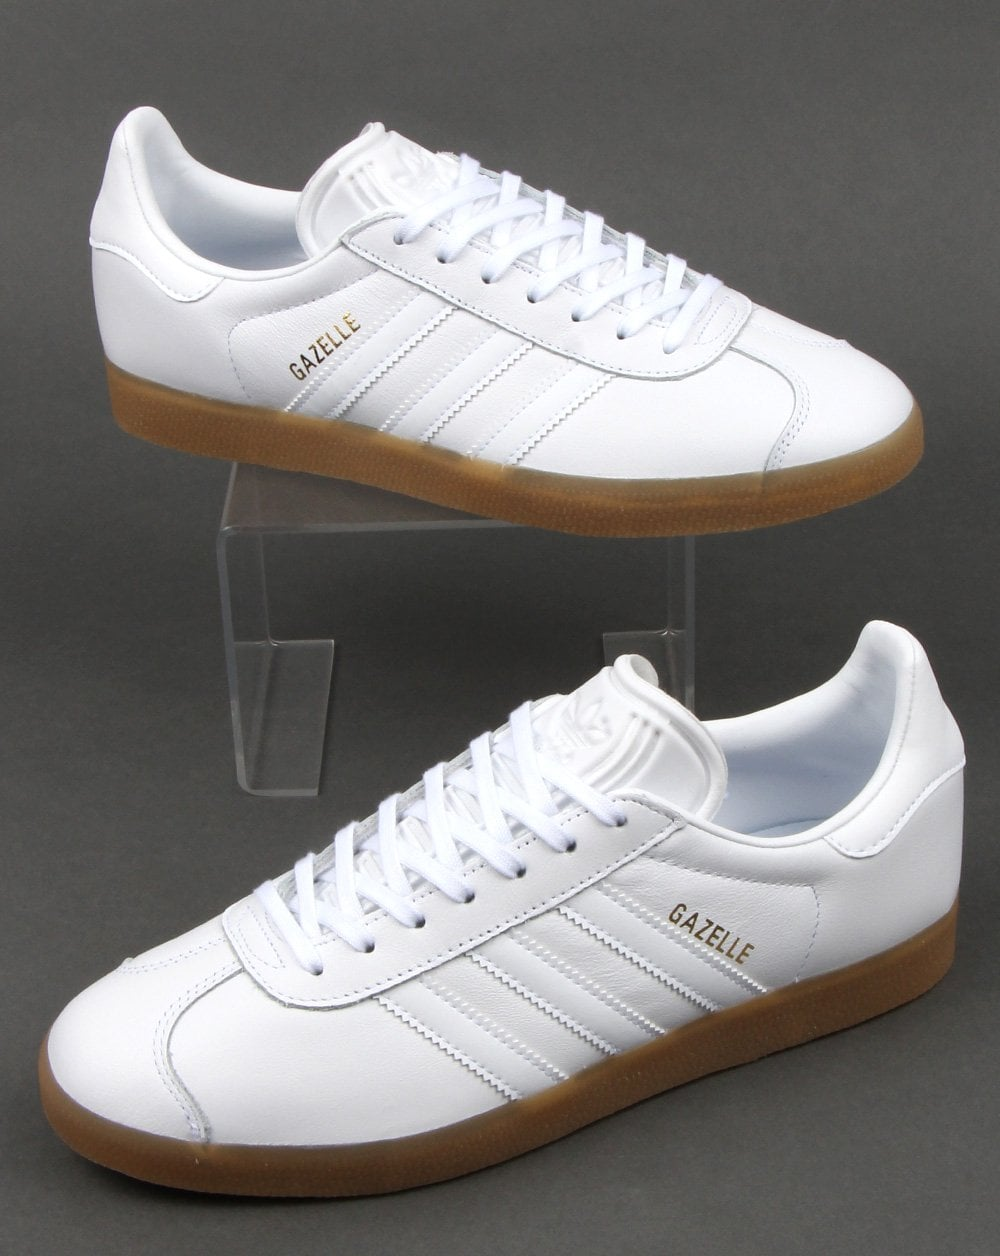 catch watch best supplier Adidas Gazelle Trainers White Leather - Gum